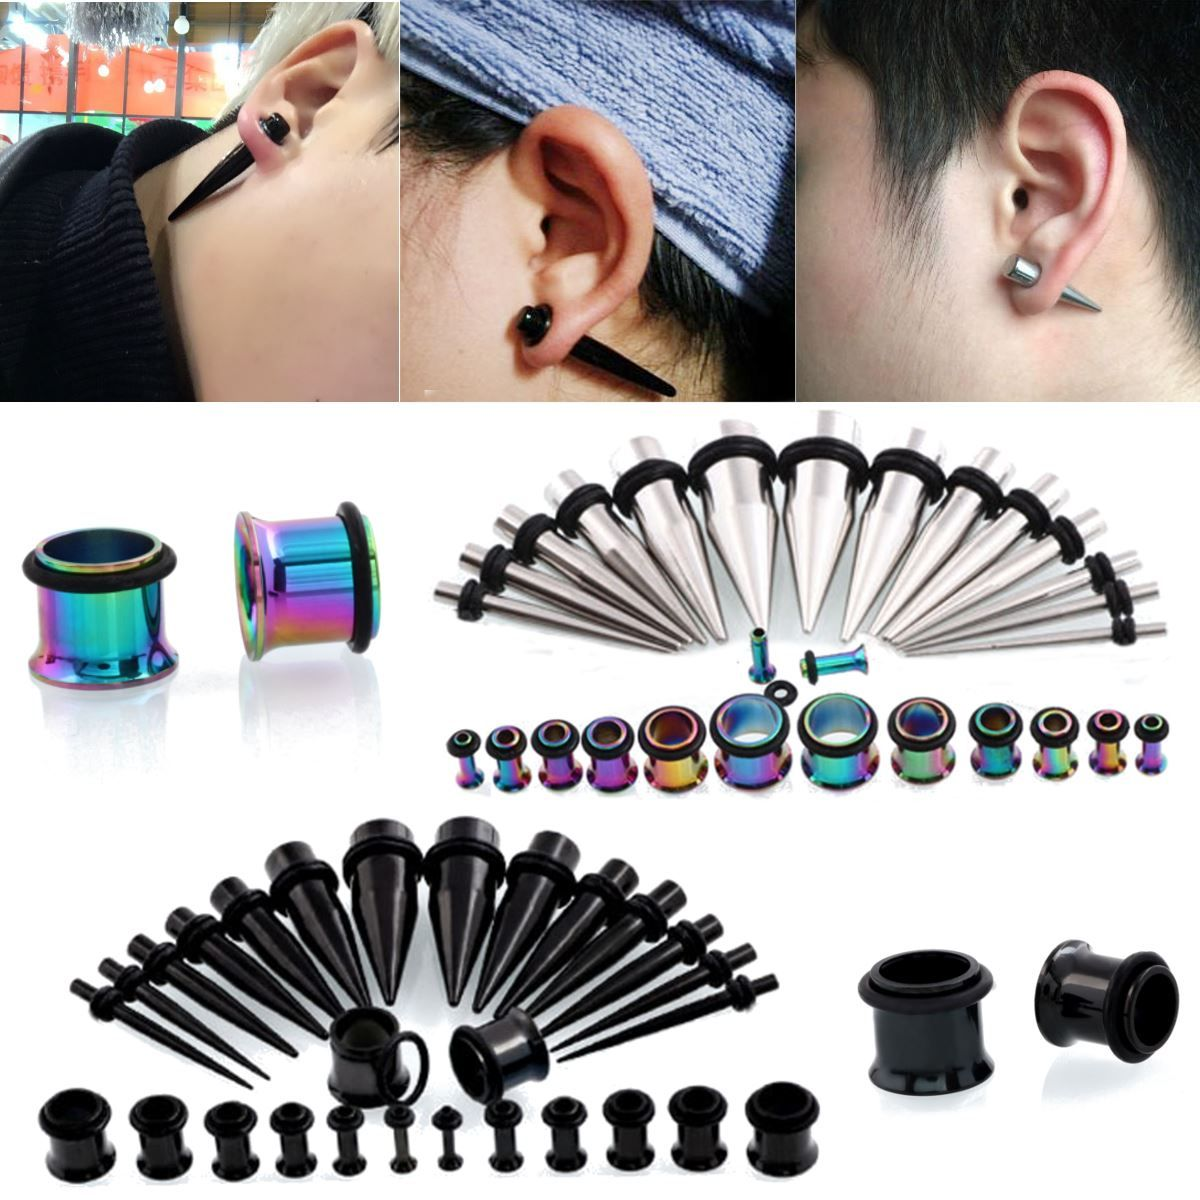 a39fec3ce check price 28pcs stainles steel ear taper stretching kit gauge expander flesh  ear plugs tunnel earlobe #gauges #ear